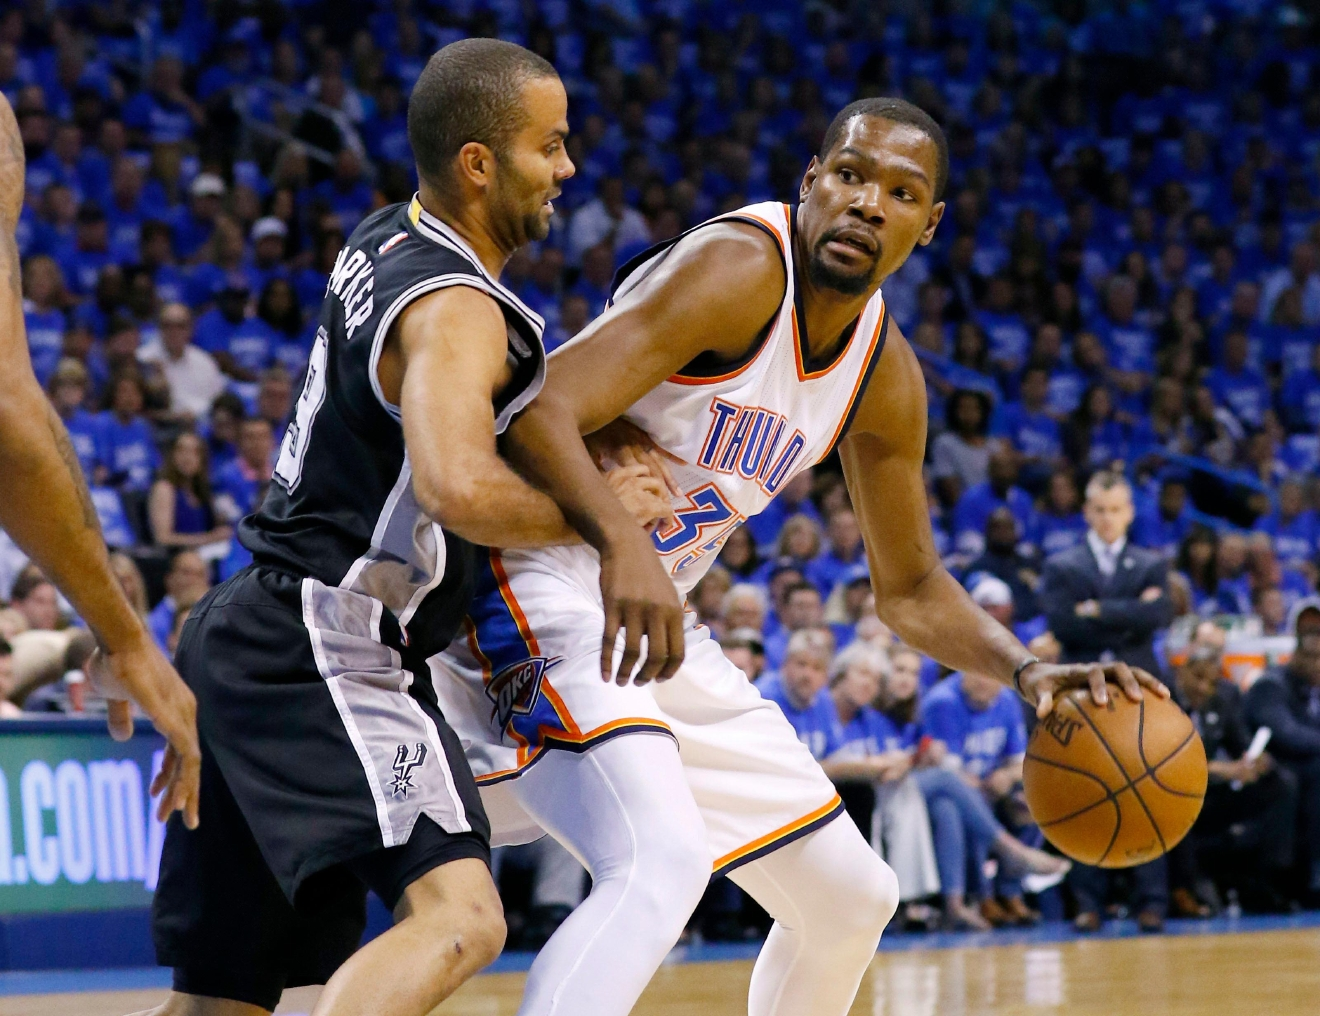 Oklahoma City Thunder forward Kevin Durant, right, drives around San Antonio Spurs guard Tony Parker, left, in the first quarter of Game 6 of a second-round NBA basketball playoff series in Oklahoma City, Thursday, May 12, 2016. (AP Photo/Alonzo Adams)